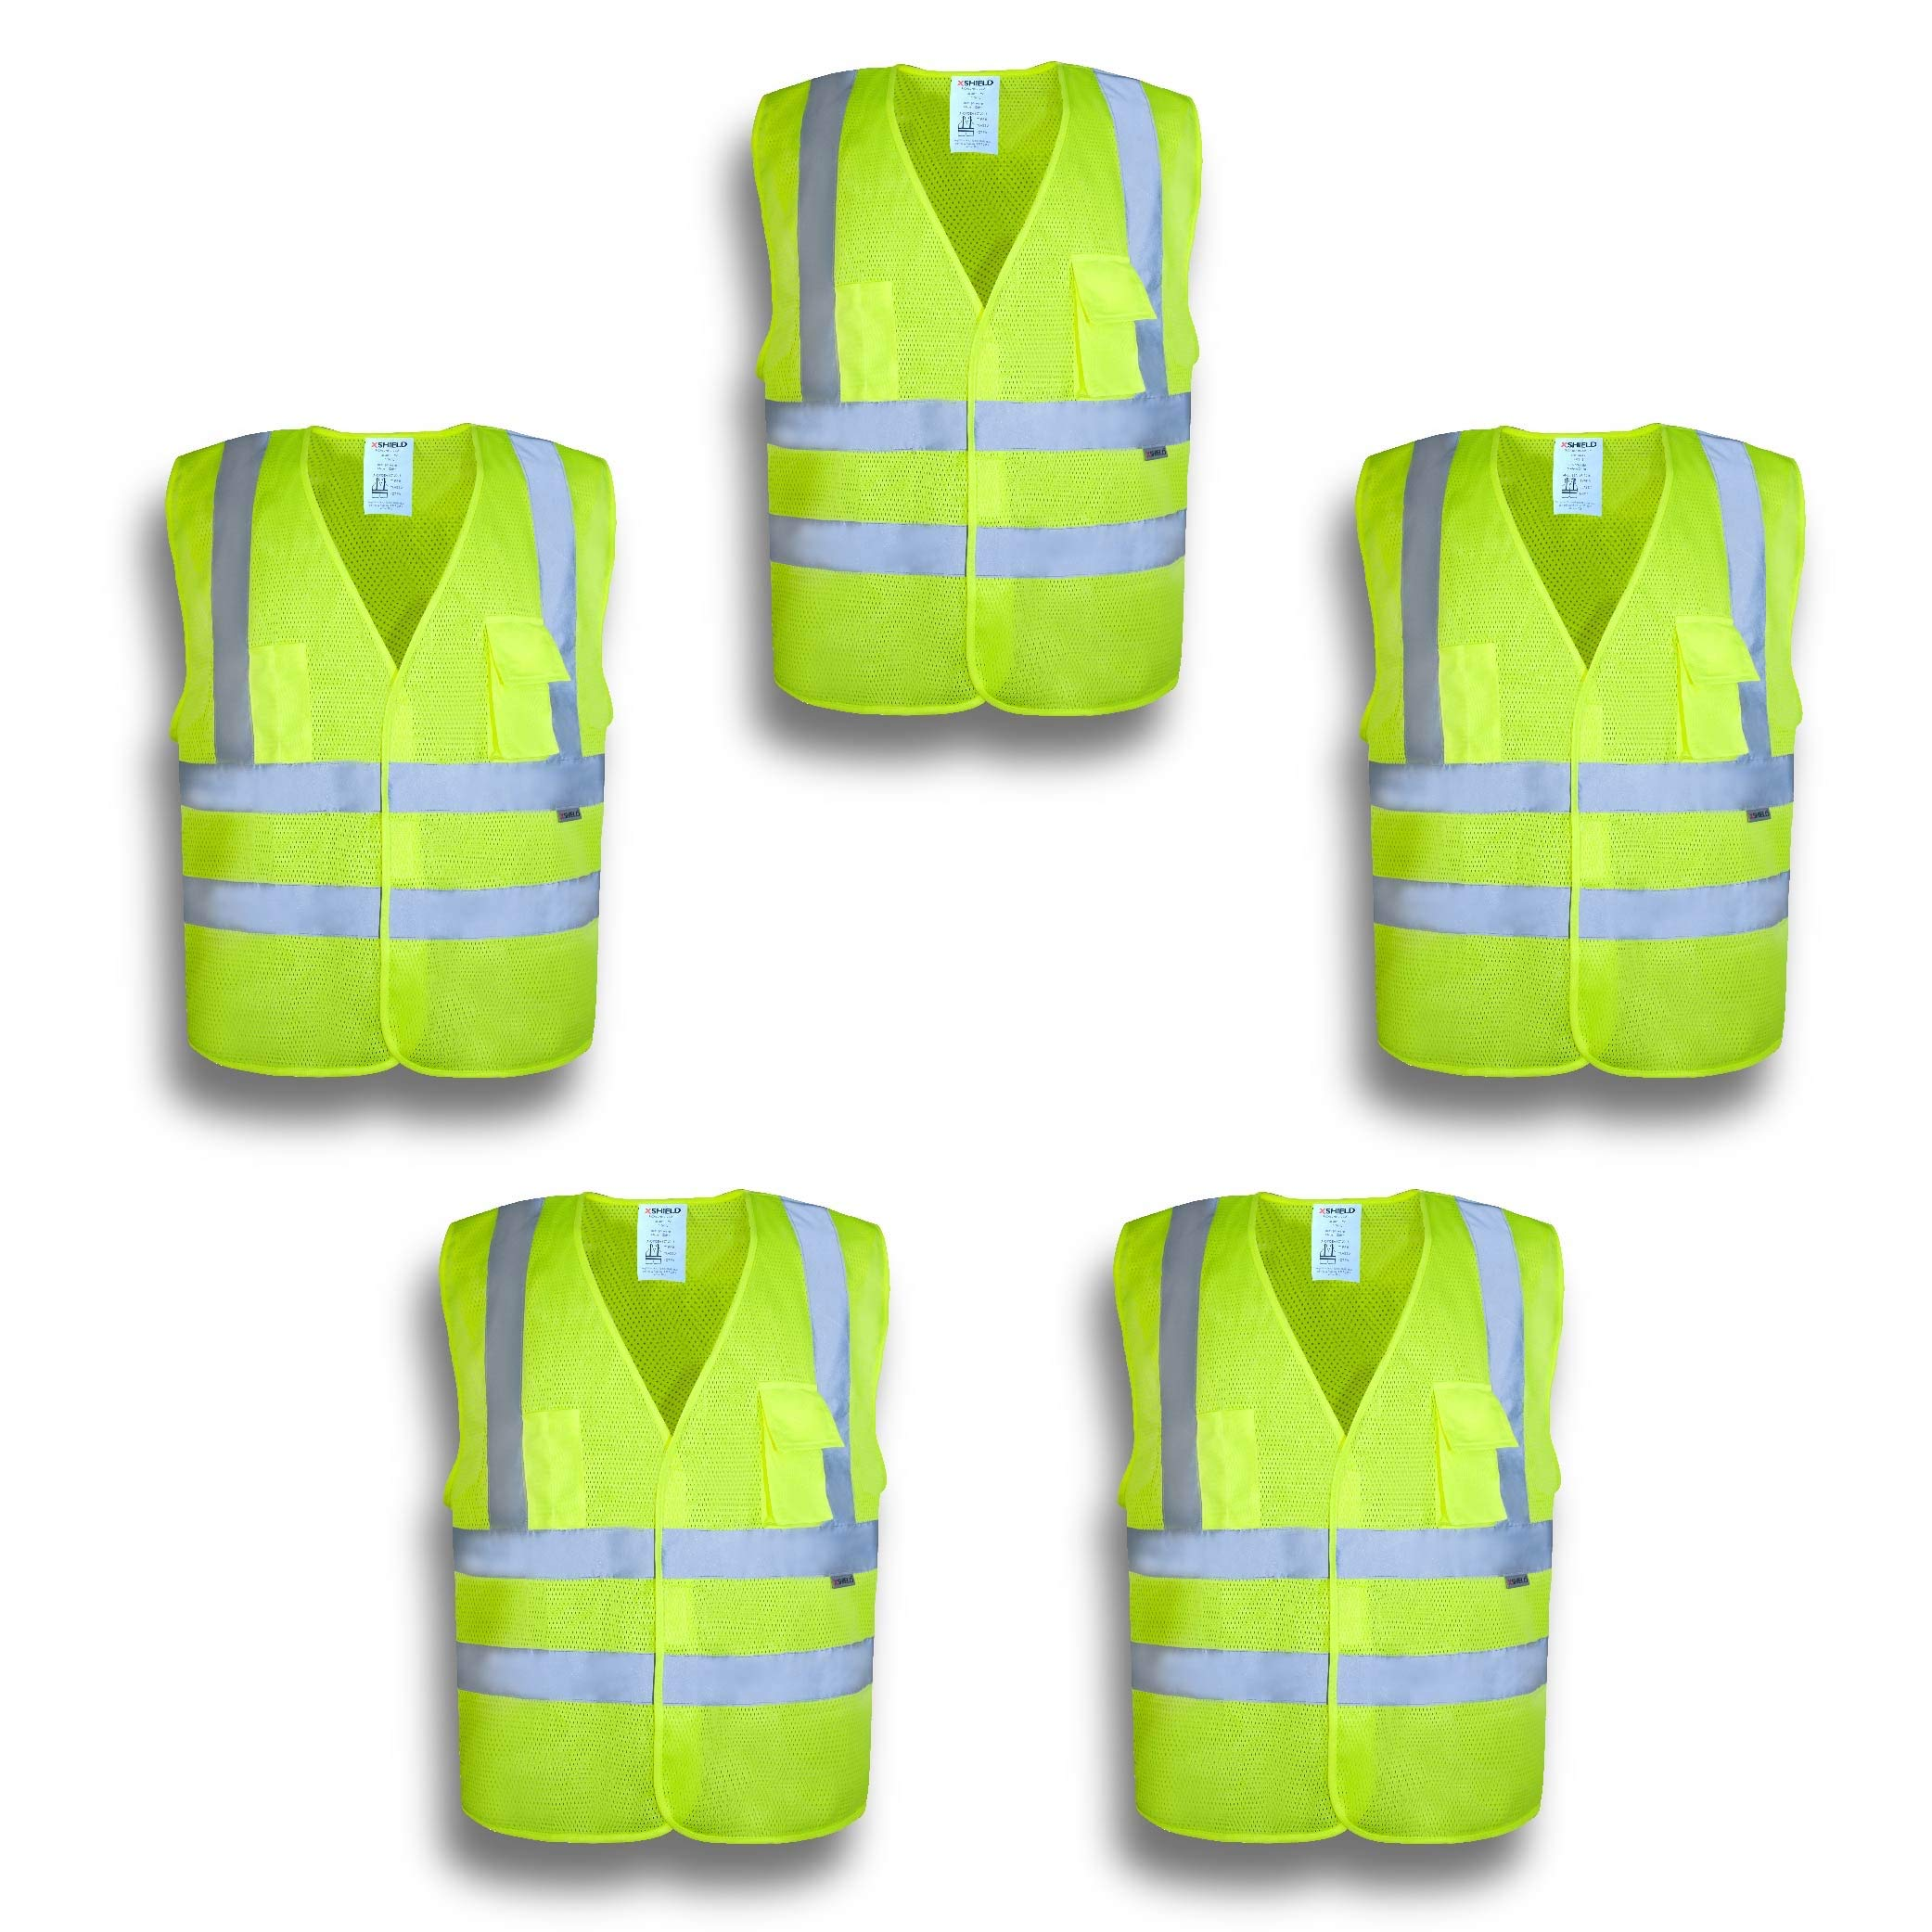 XSHIELD XS0006,High Visibility Mesh Safety Vest with Silver Stripe,ANSI/ISEA 107-2015 Type R Class2 Not FR,Pack of 5 (XL, Yellow)